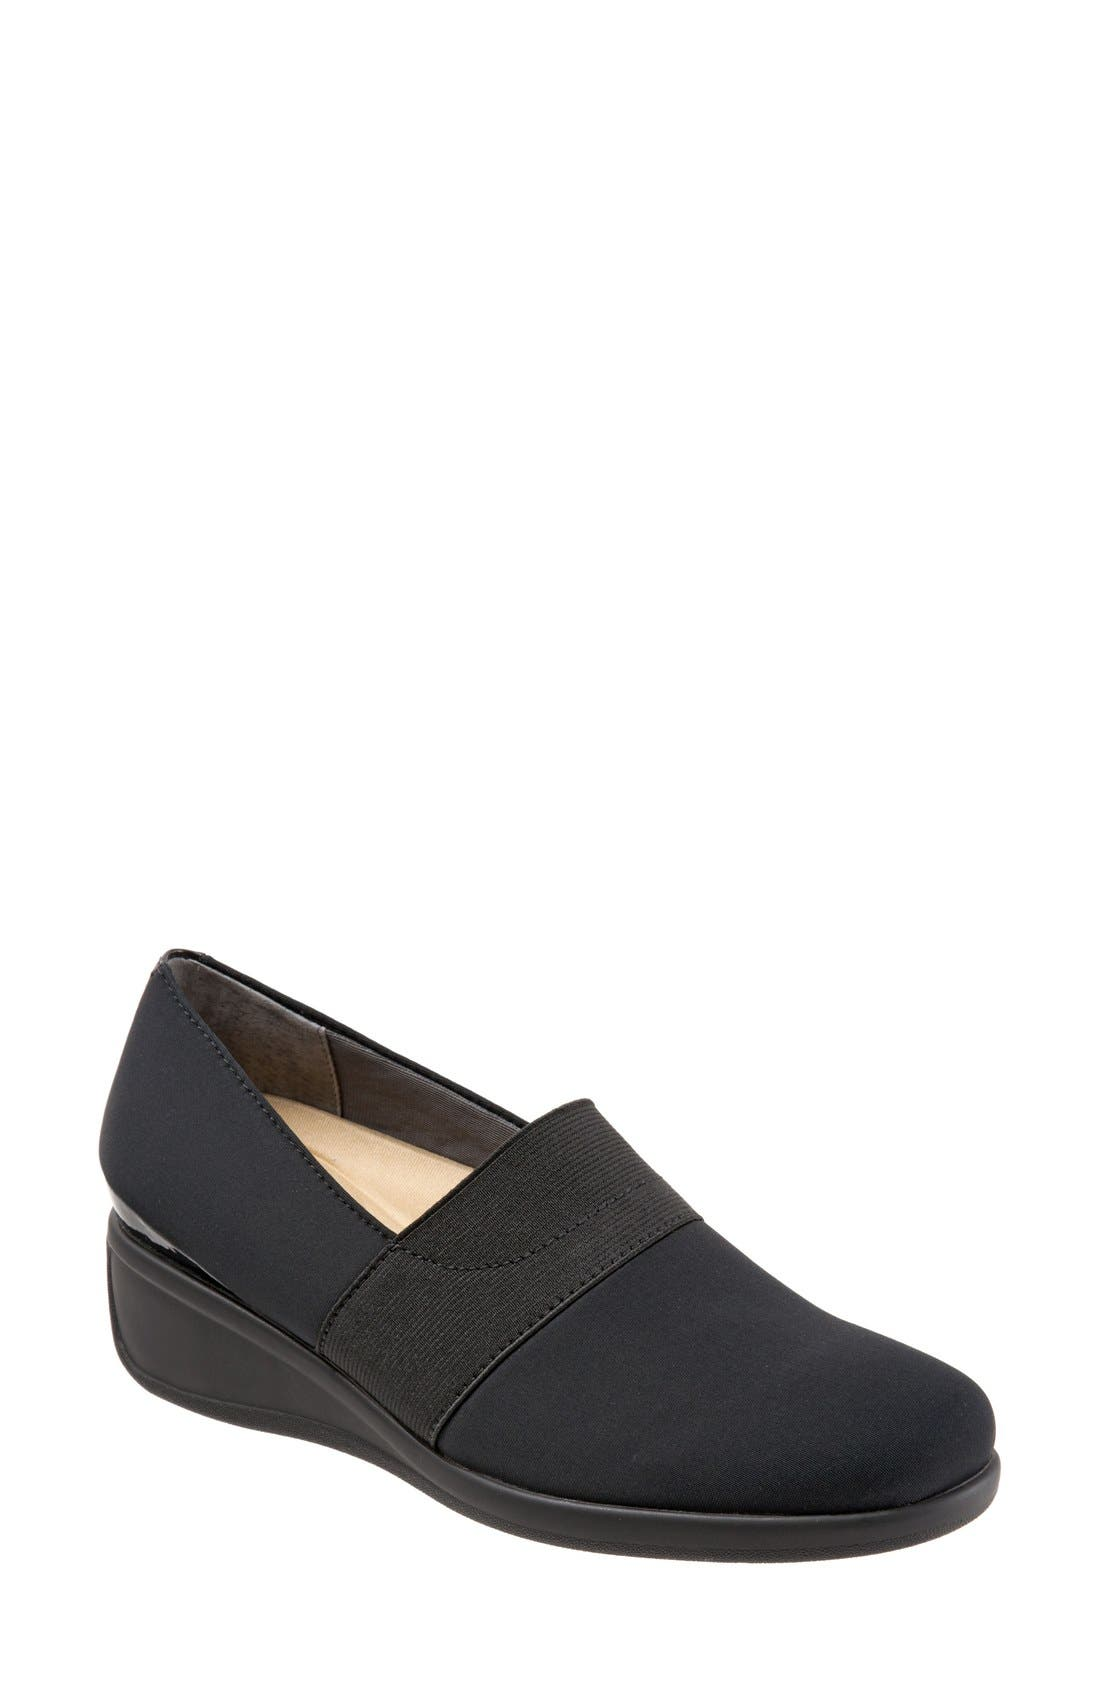 TROTTERS Marley Slip-On Wedge Pump